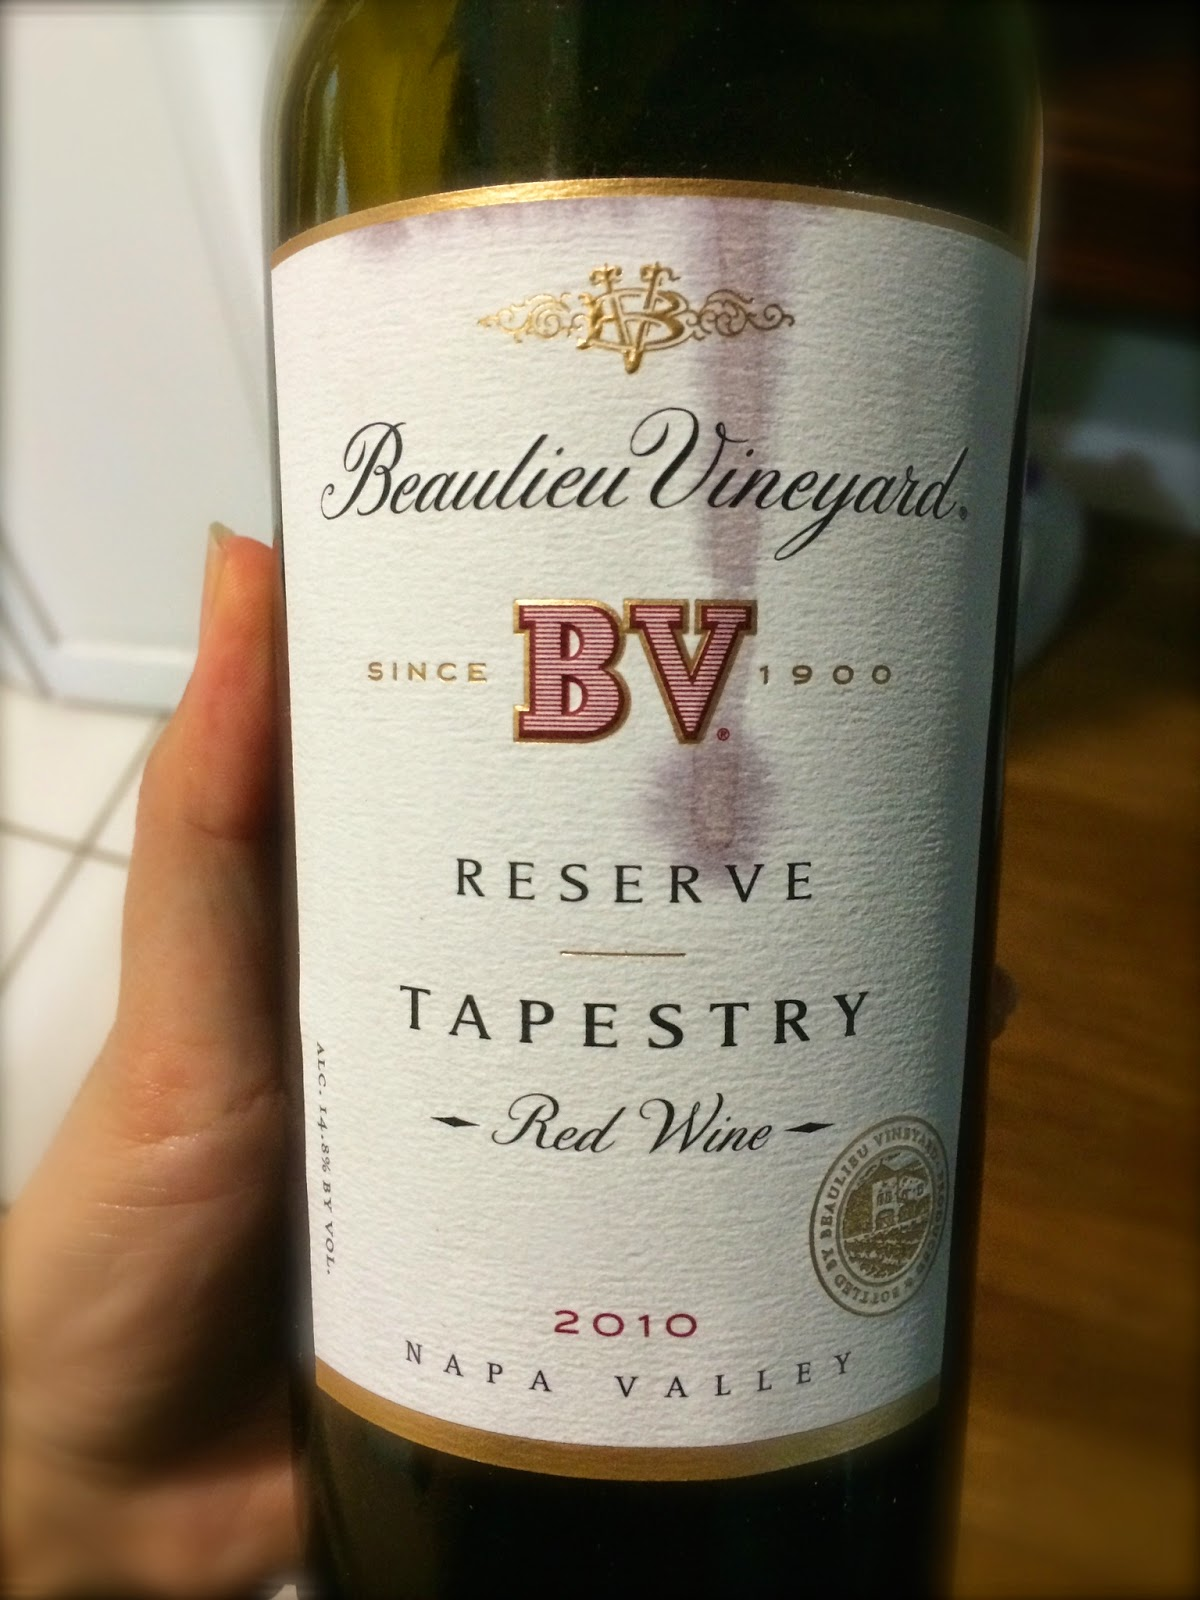 Tapestry Reserve Vineyard Tapestry Reserve